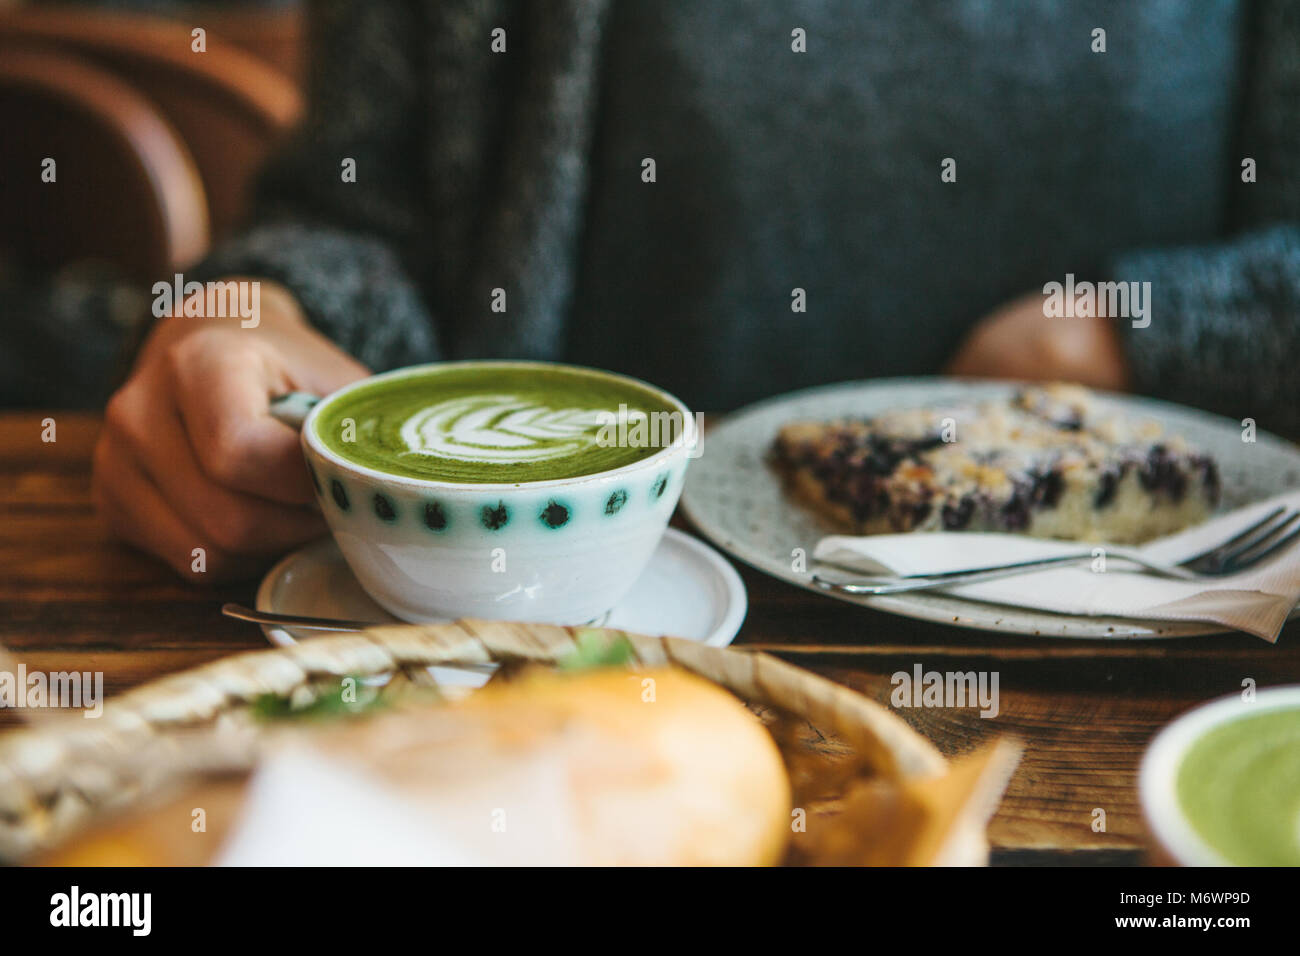 The girl sitting in cafe and holding mug with green tea with milk next to piece of sweet pie and two sandwiches - Stock Image